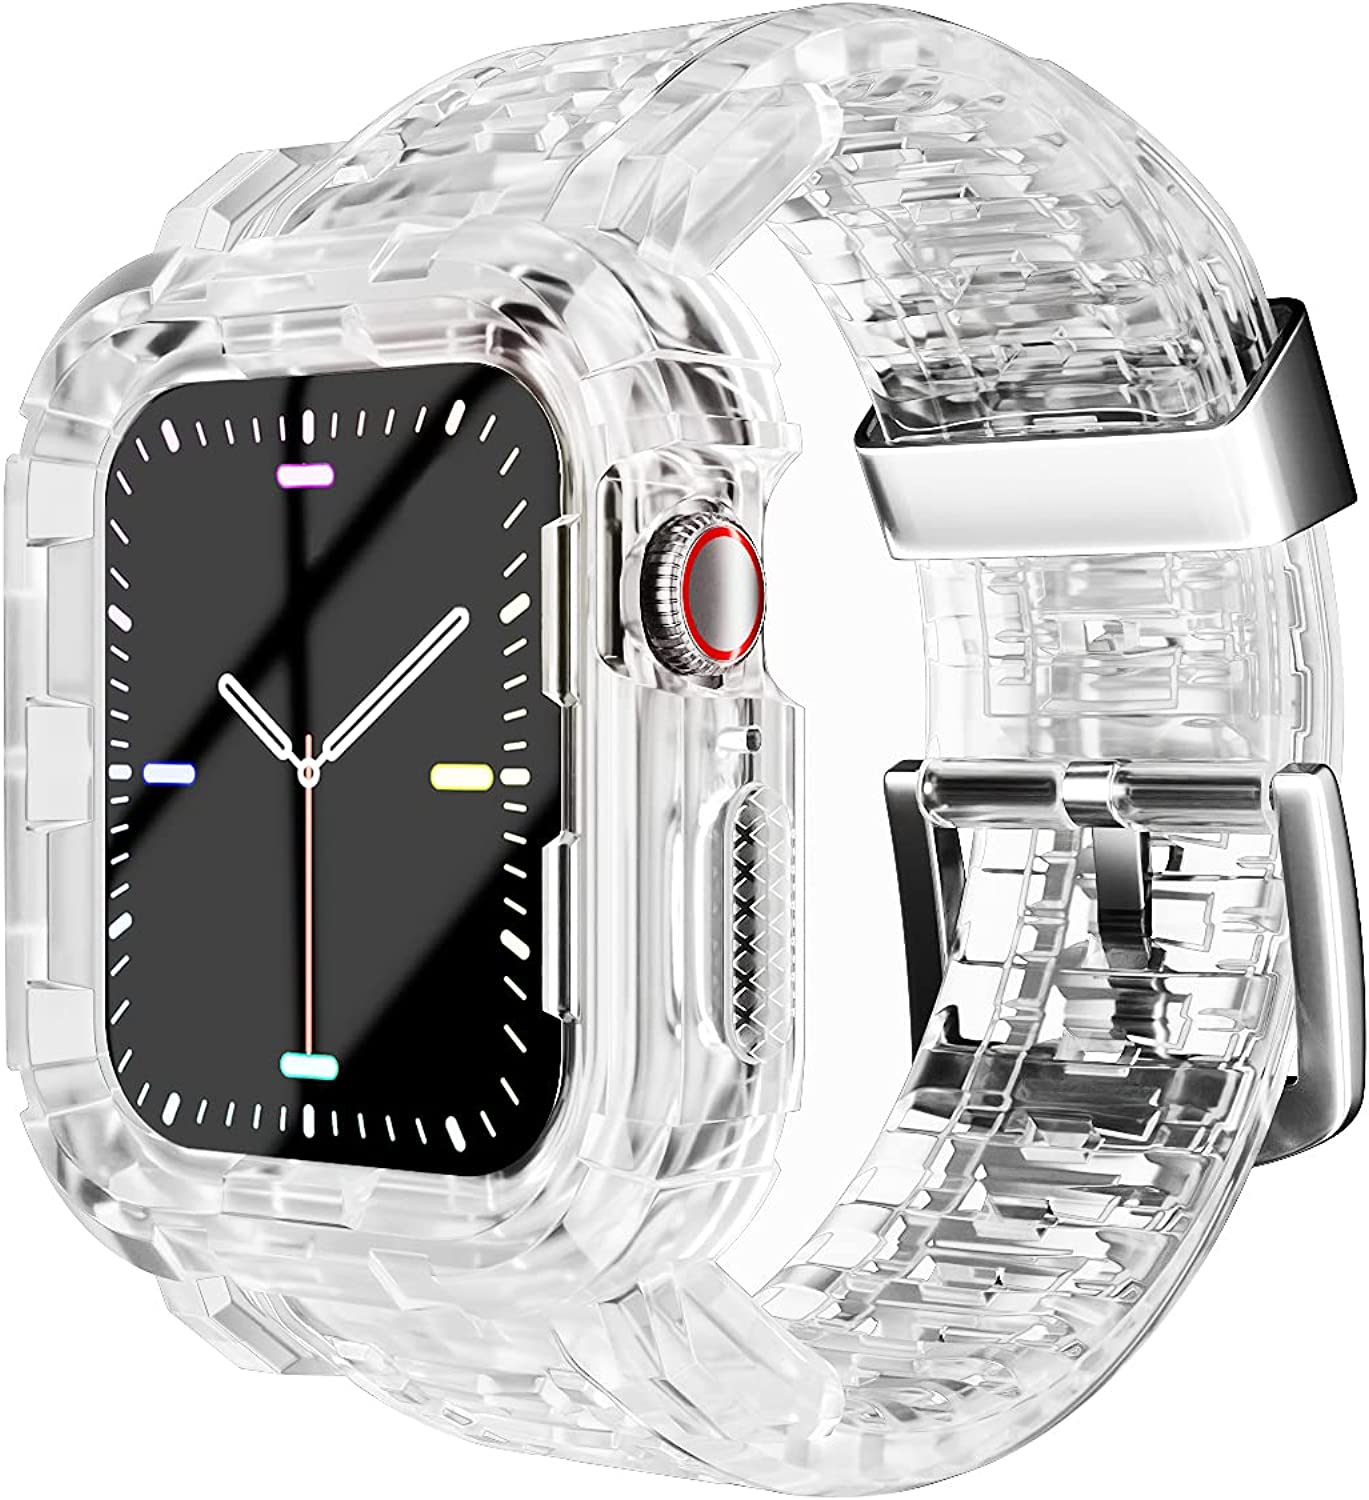 Compatible for Apple Watch Clear Band 38mm 40mm 42mm 44mm with Case,Rugged Bumper Sports Crystal Band Strap Protective Case with Bands Compatible with iWatch SE Series 6/5/4/3/2/1 Transparent